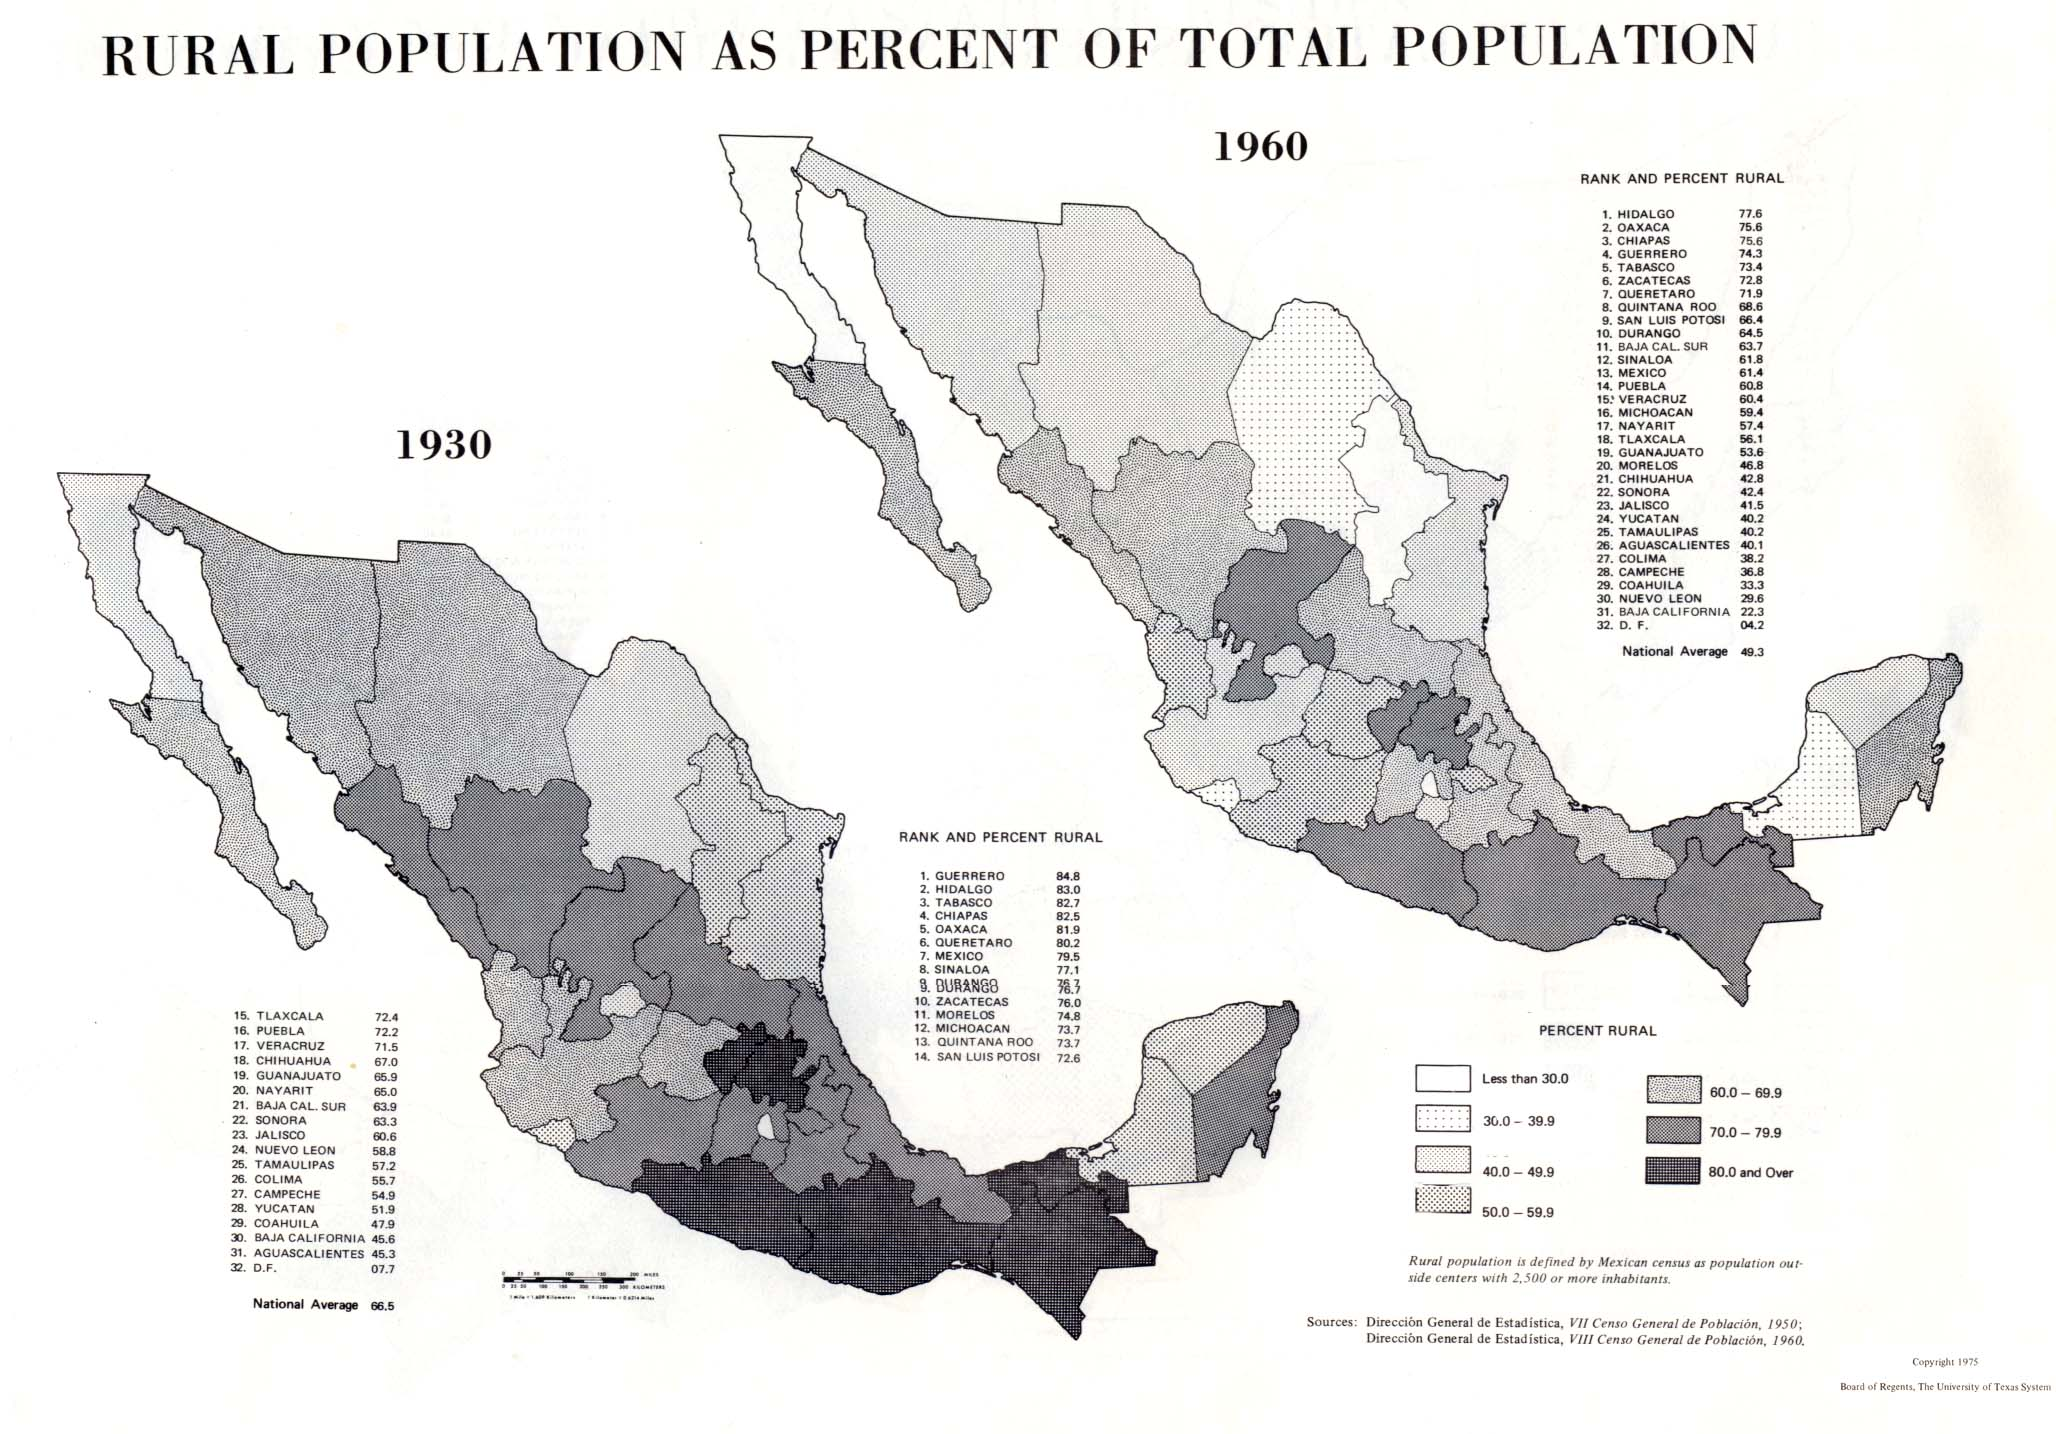 Map of Rural Population as Percent of Total Population, Mexico 1930, 1960